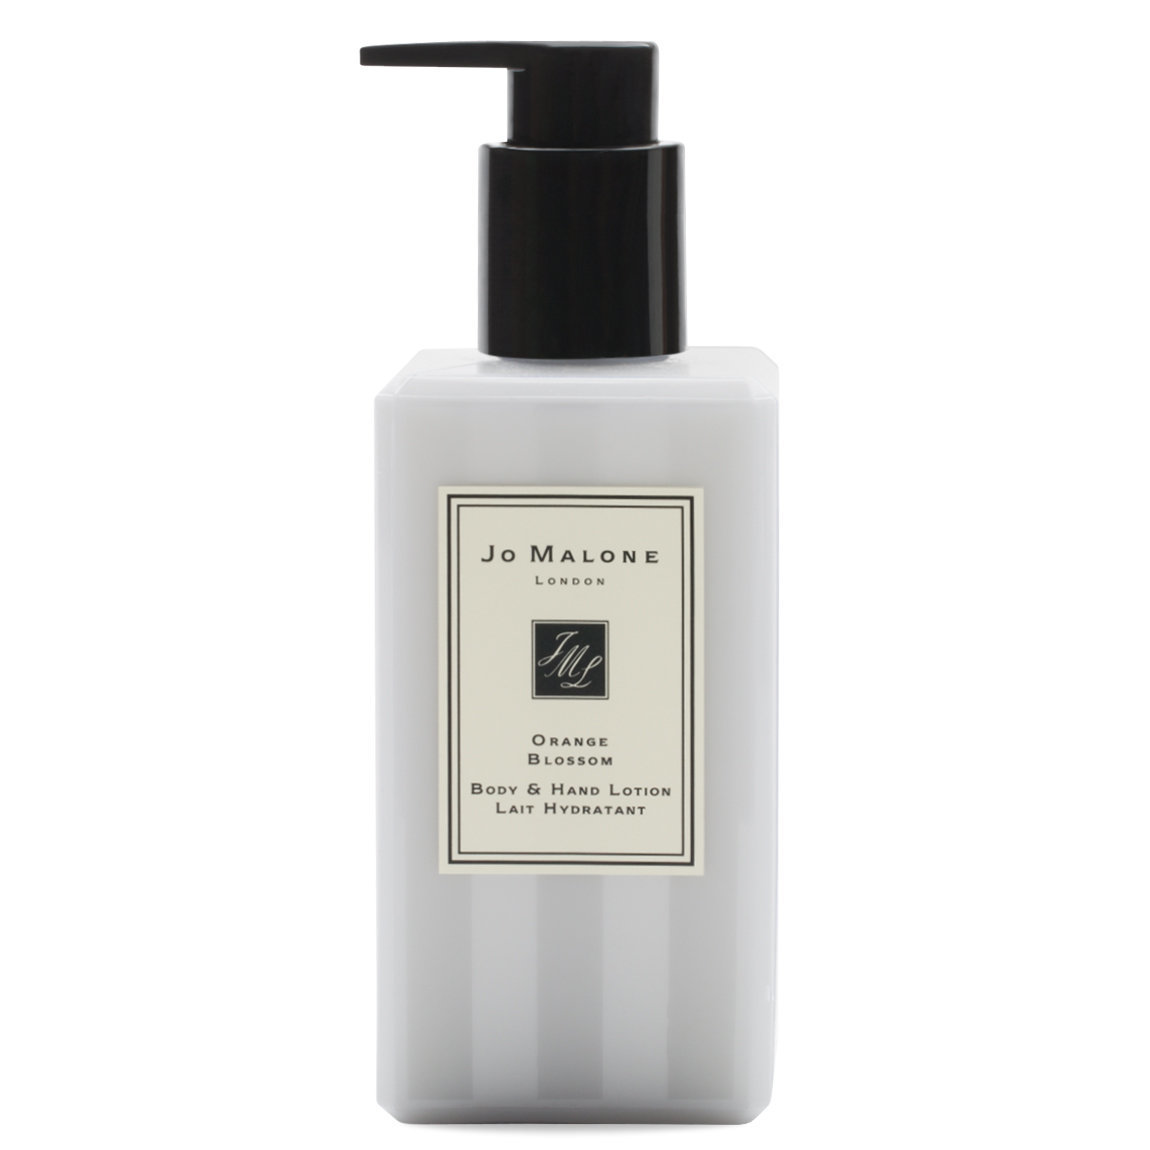 Jo Malone London Orange Blossom Body & Hand Lotion alternative view 1 - product swatch.